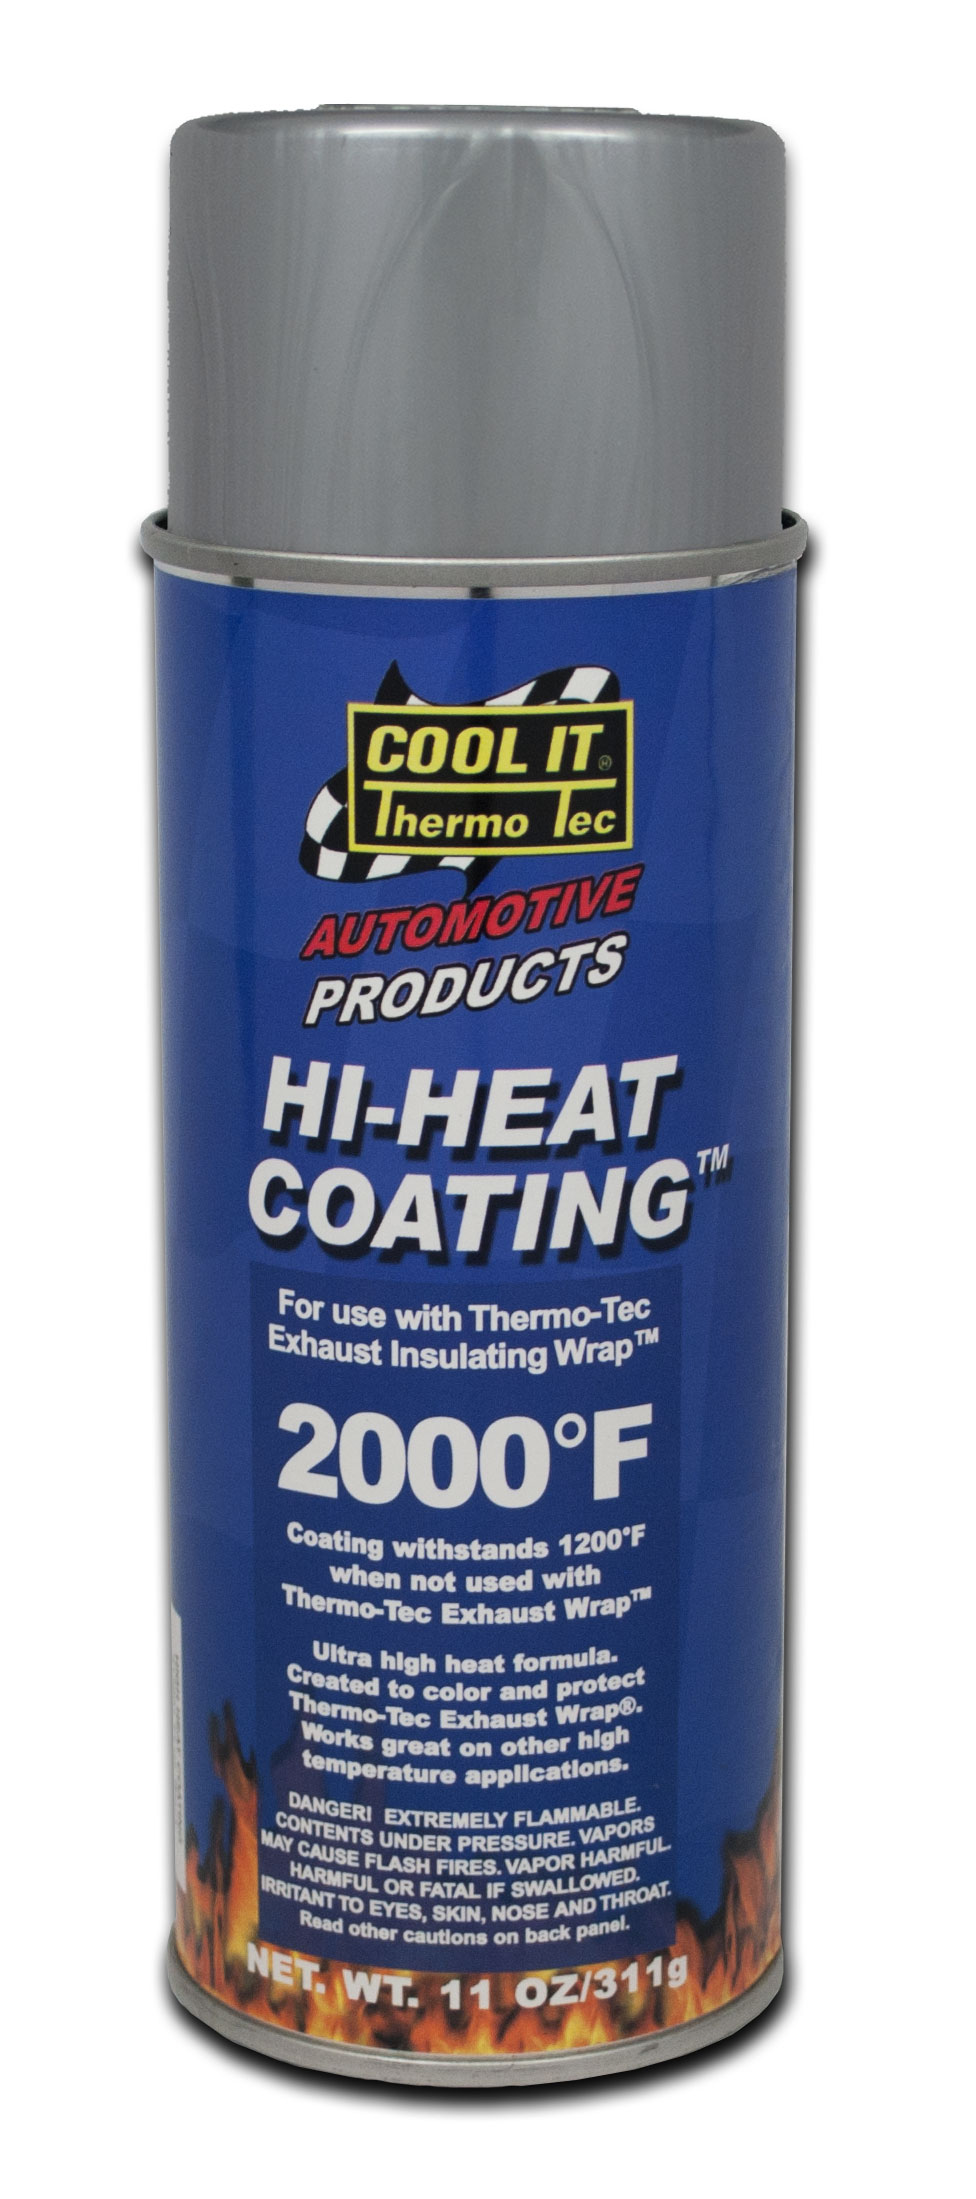 12002 Thermo-Tec Heat Shield Coating For Use With Exhaust Insulating